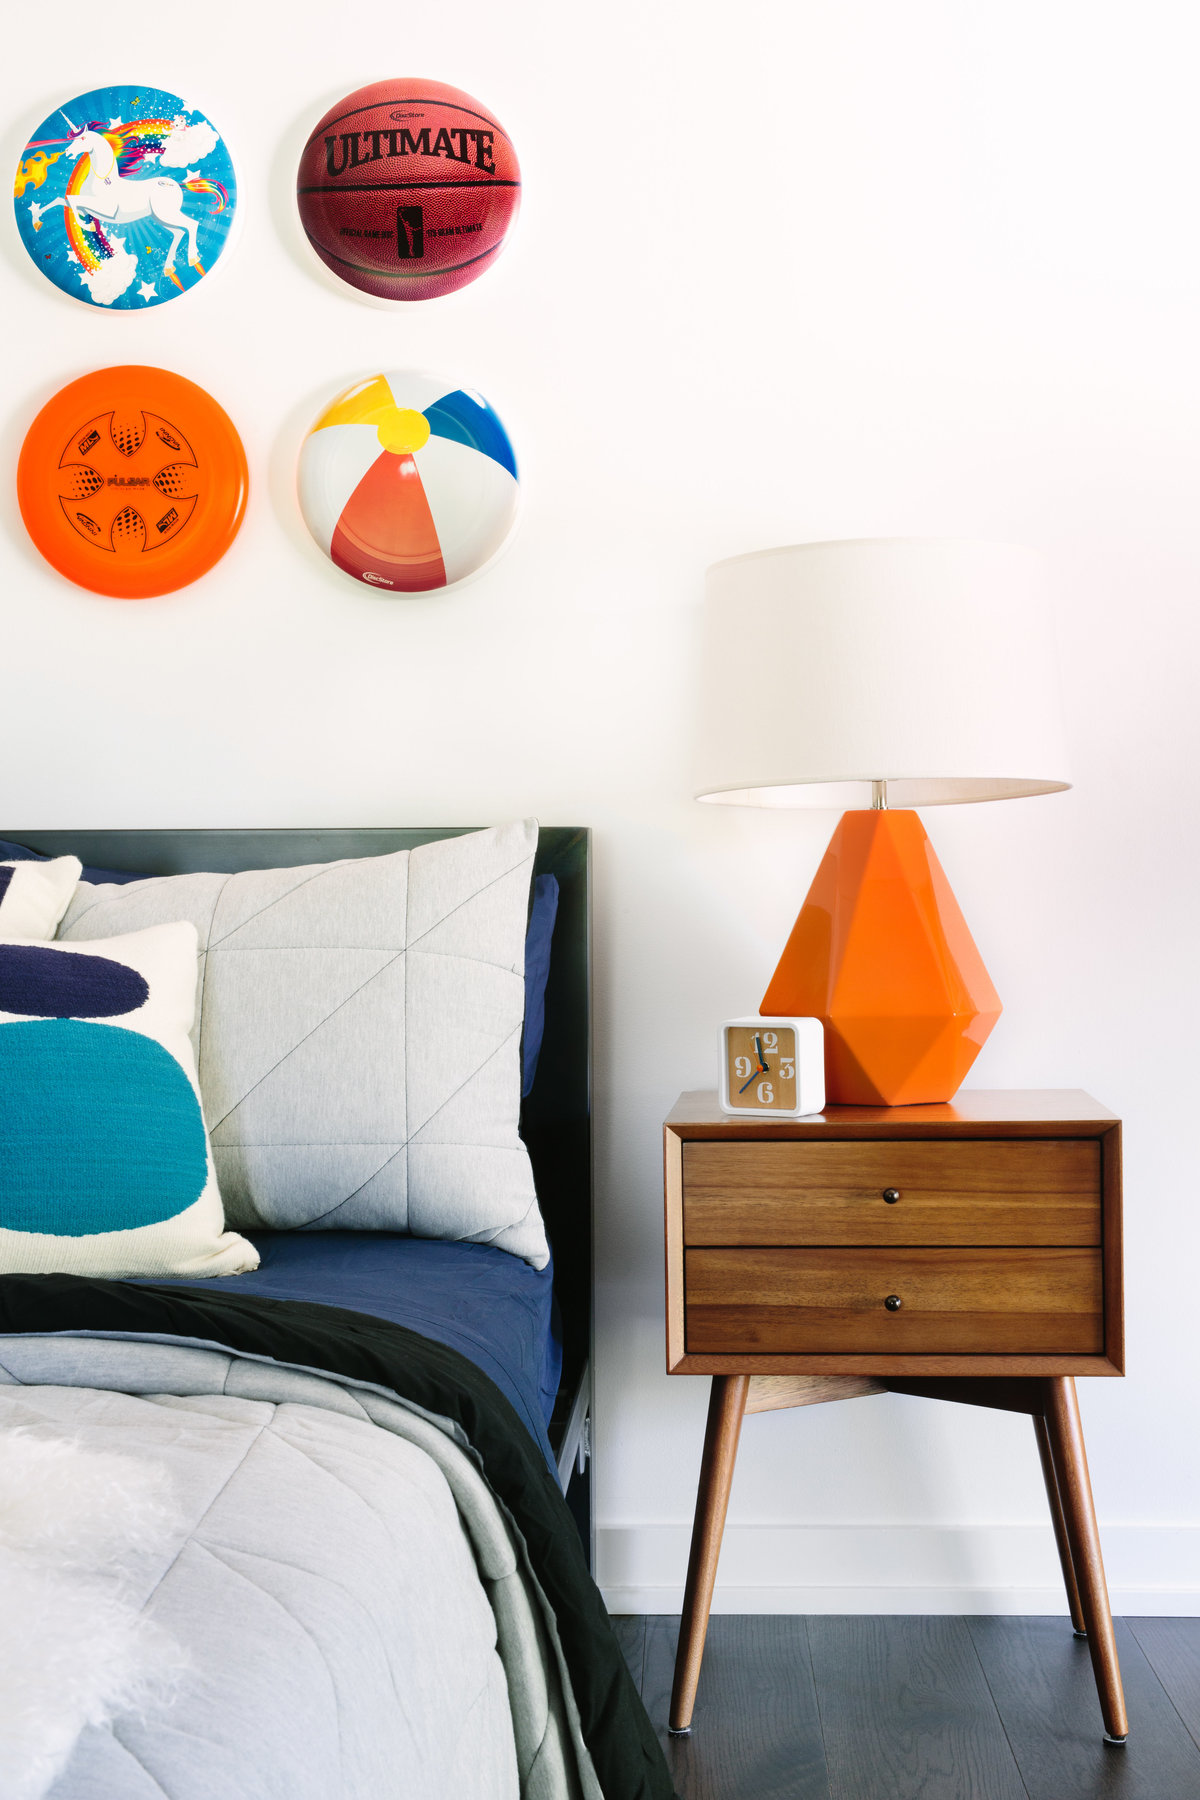 Boys bedroom with walnut nightstand, orange lamp, and frisbee art installation